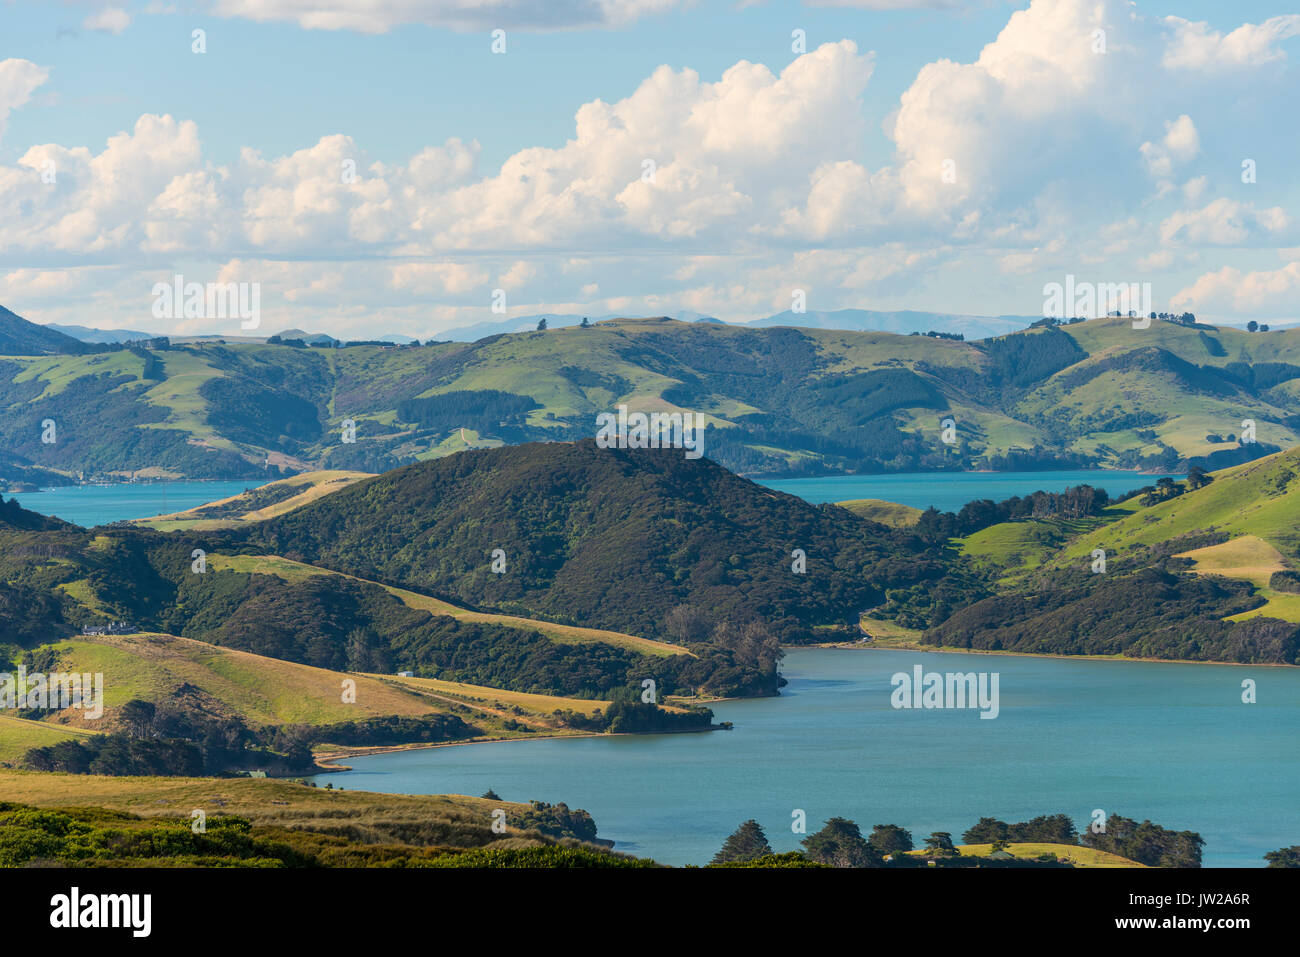 Hoopers Inlet, Inlet in green hilly landscape, Dunedin, Otago Peninsula, South Island, New Zealand, Oceania - Stock Image